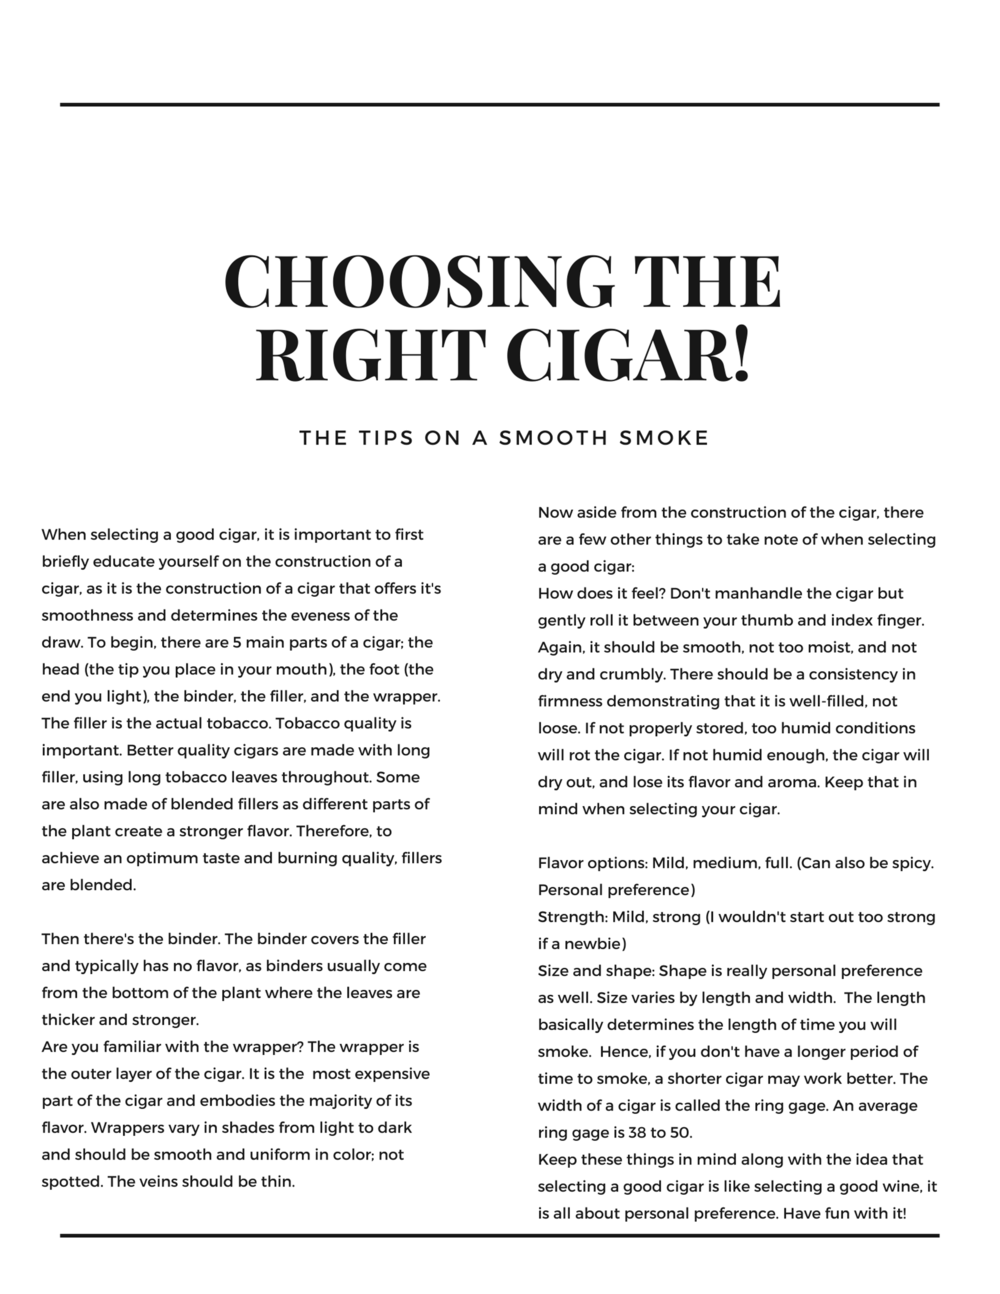 THE OUTLET MEDIA MAG- cigars